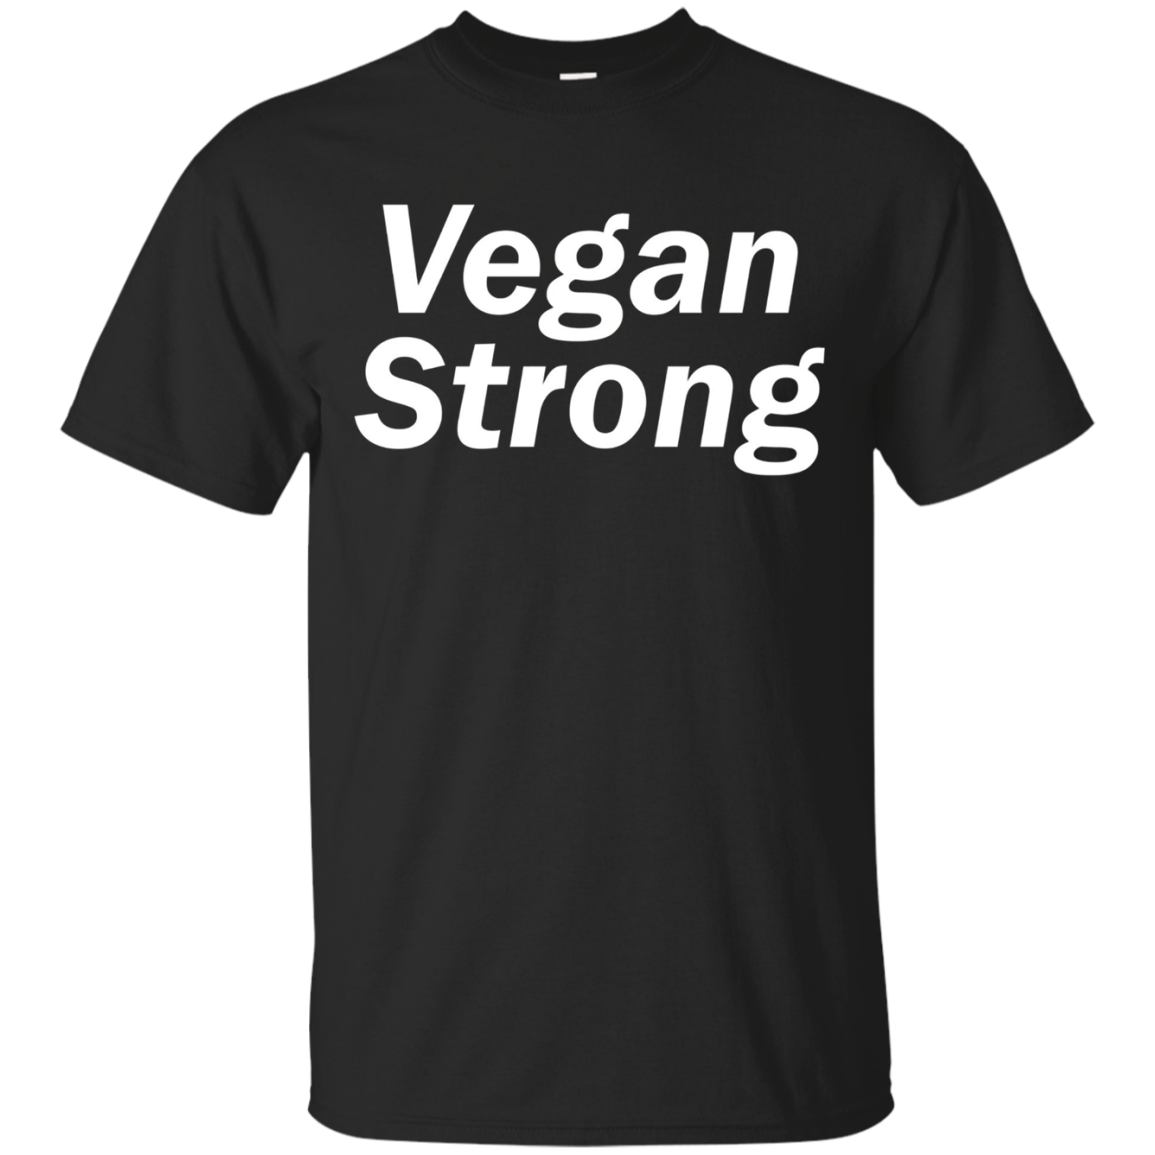 Vegan Strong T-Shirt